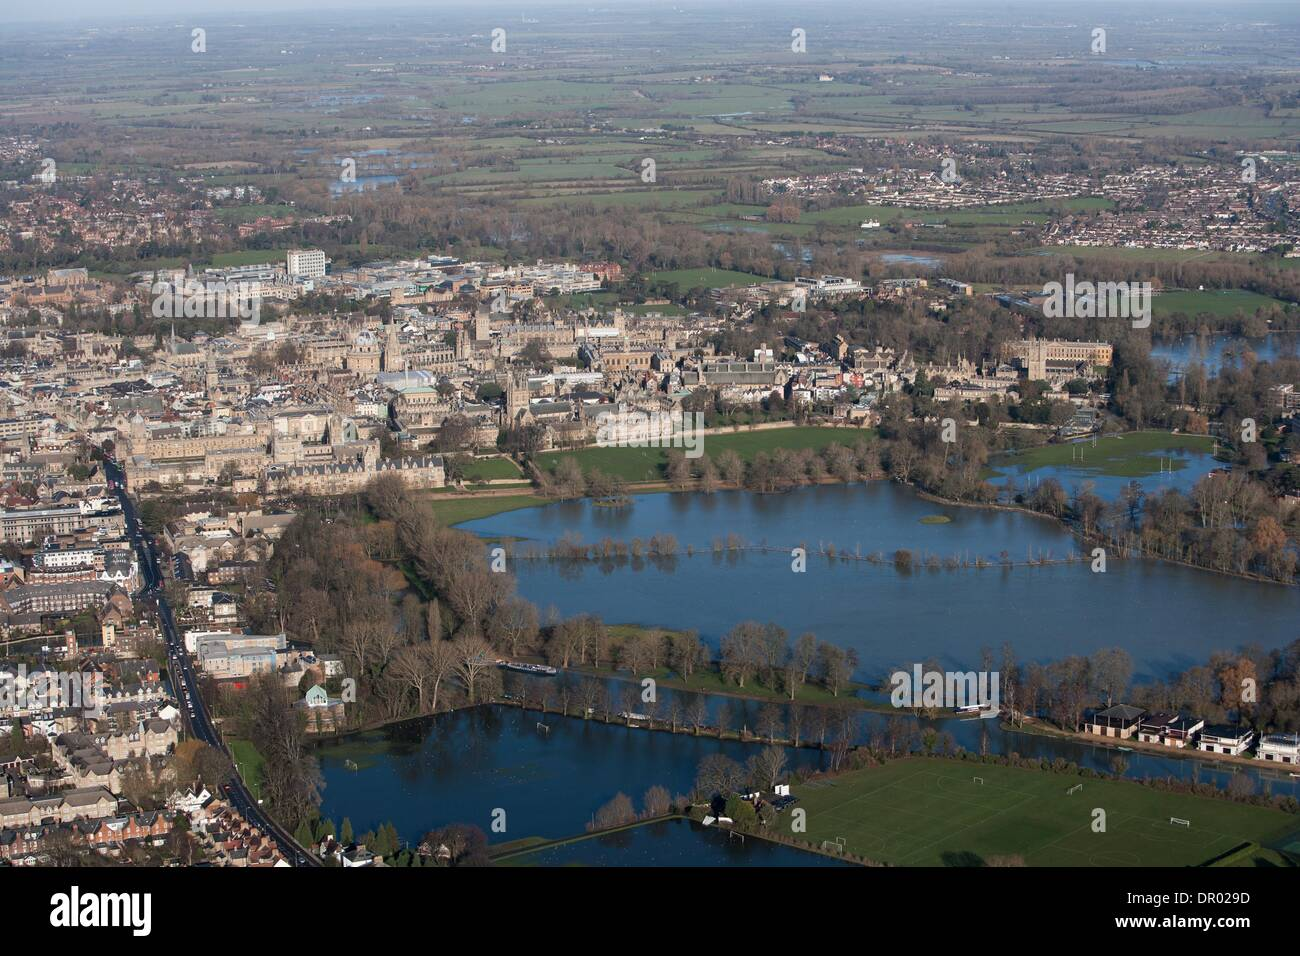 Oxford, UK. 14th January 2014. Oxford in  flood .  View towards Christchurch meadow in full flood and central  Oxford .  Thames in flood Credit:  adrian arbib/Alamy Live News - Stock Image